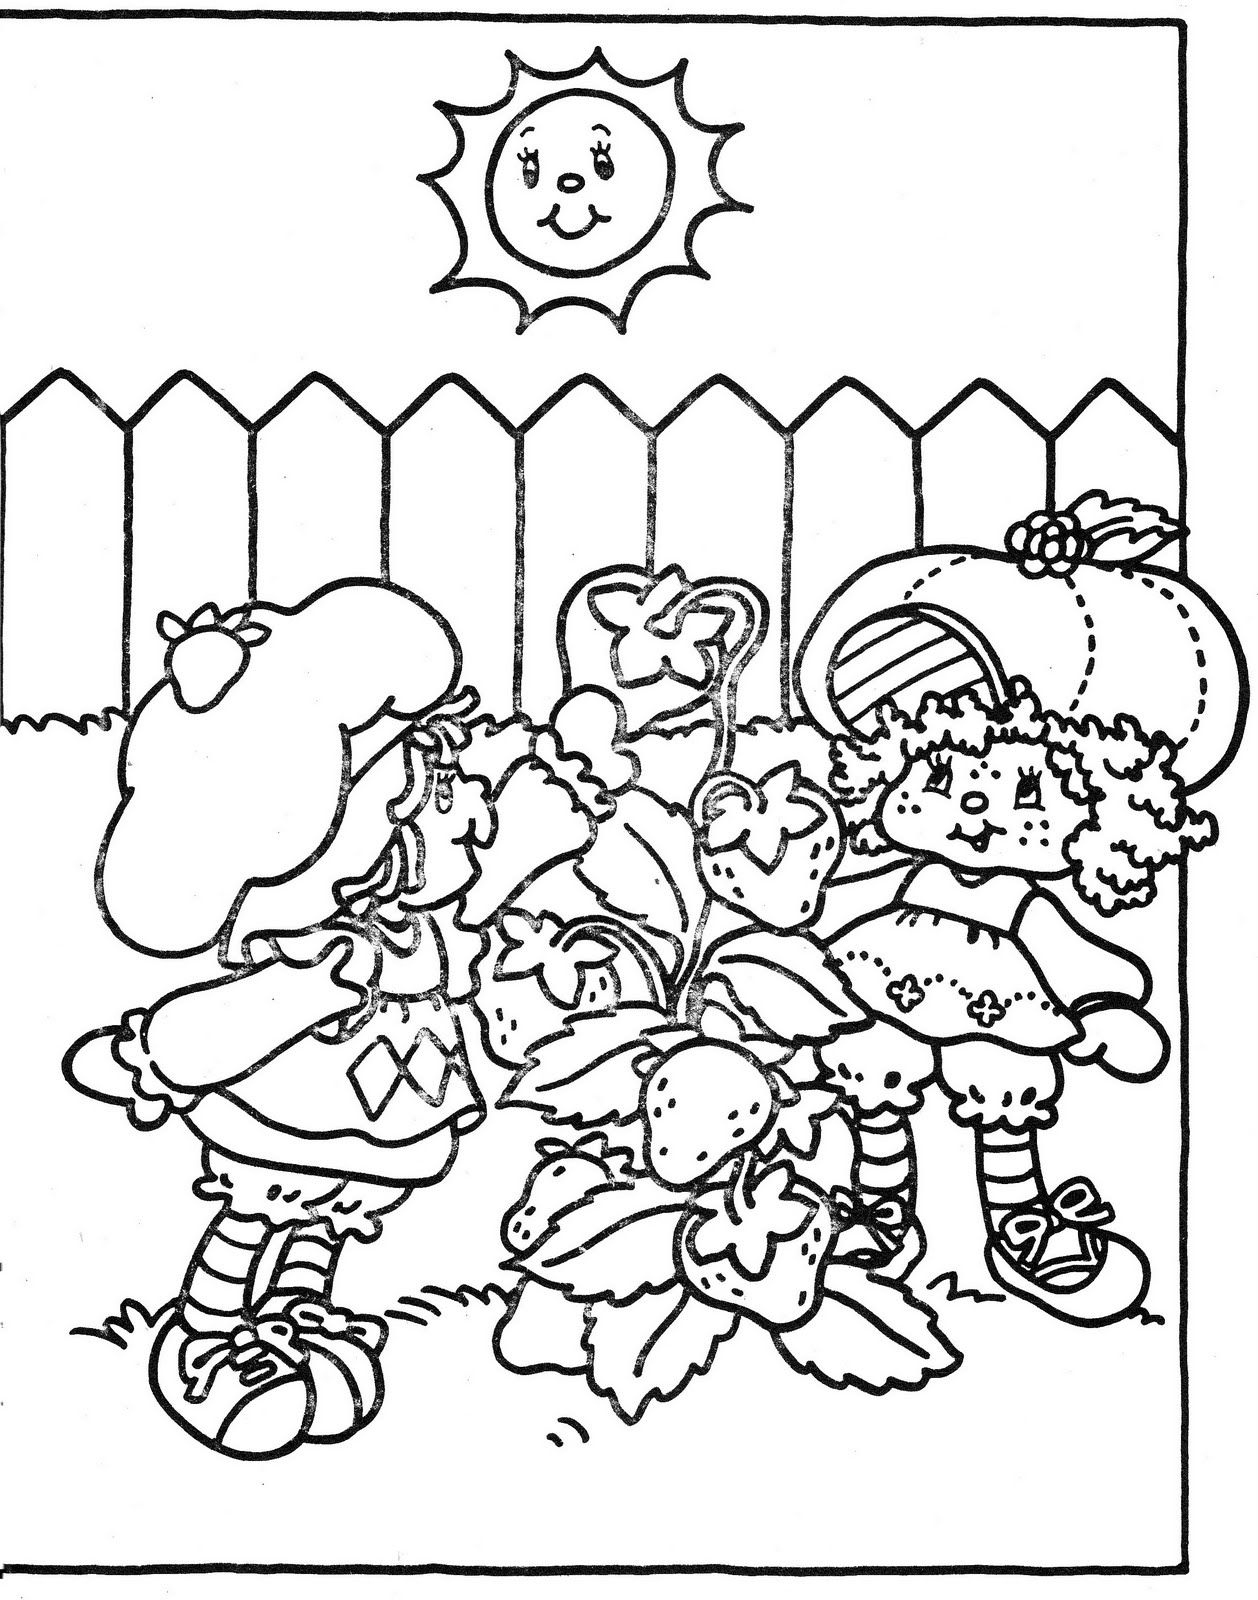 Vintage Kenner / American Greetings Strawberry Shortcake pour Coloriage Charlotte Aux Fraises Et Ses Amies